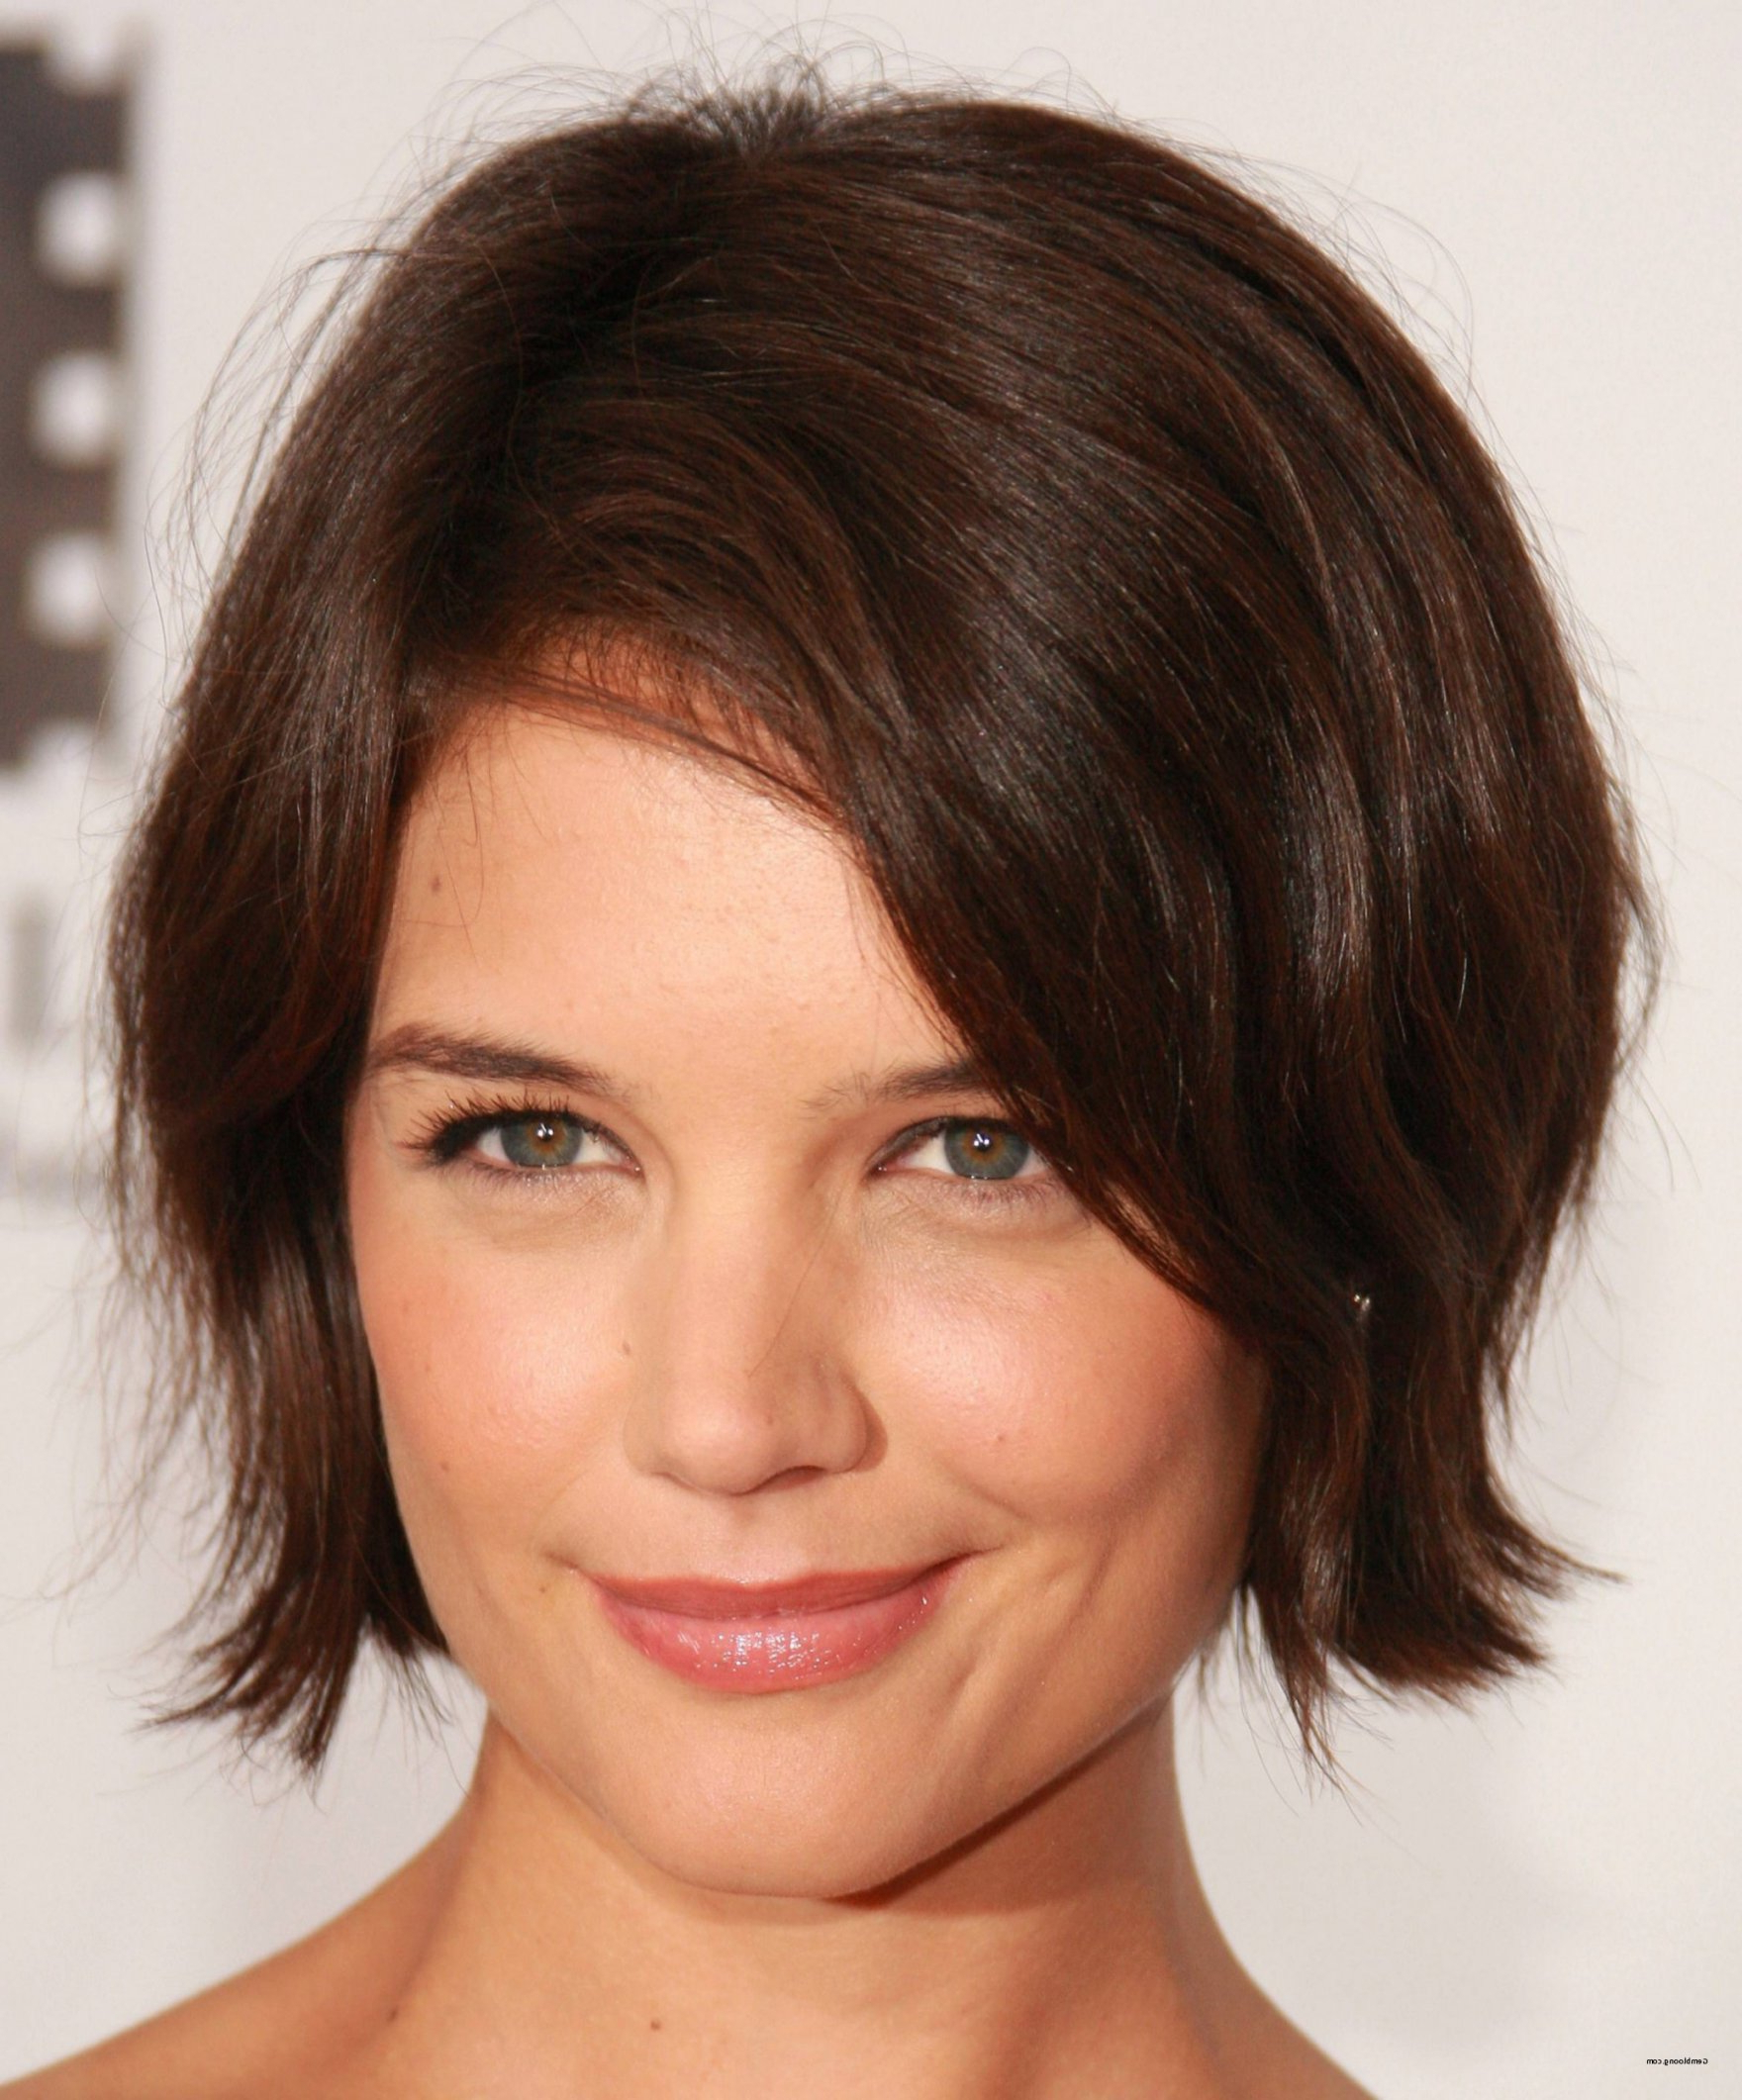 Hairstyles For Thick Hair And Round Faces » Best Hairstyles Pertaining To Short Hairstyles For Oval Face Thick Hair (View 21 of 25)